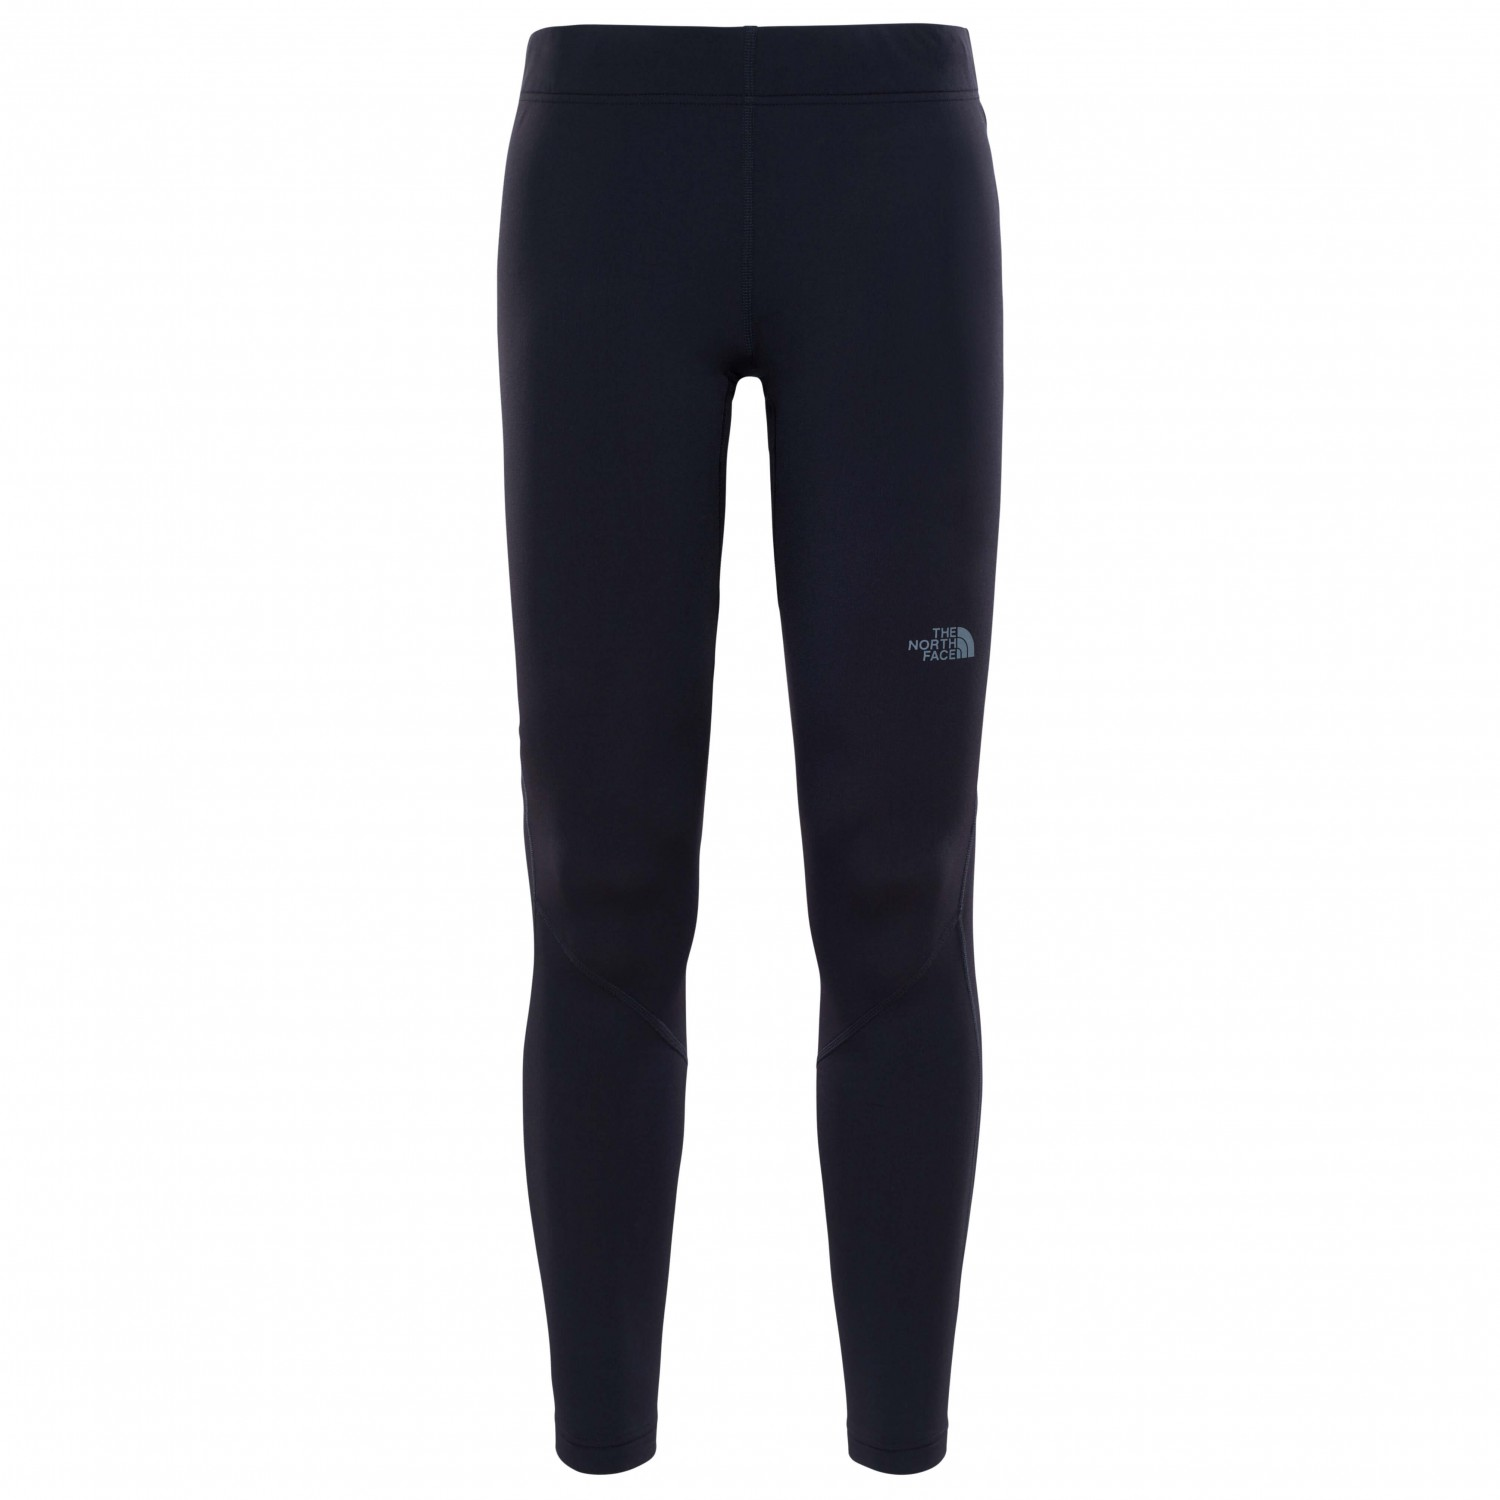 1c4f6c2ef7792 ... The North Face - Women's Winter Warm Tights - Running trousers ...